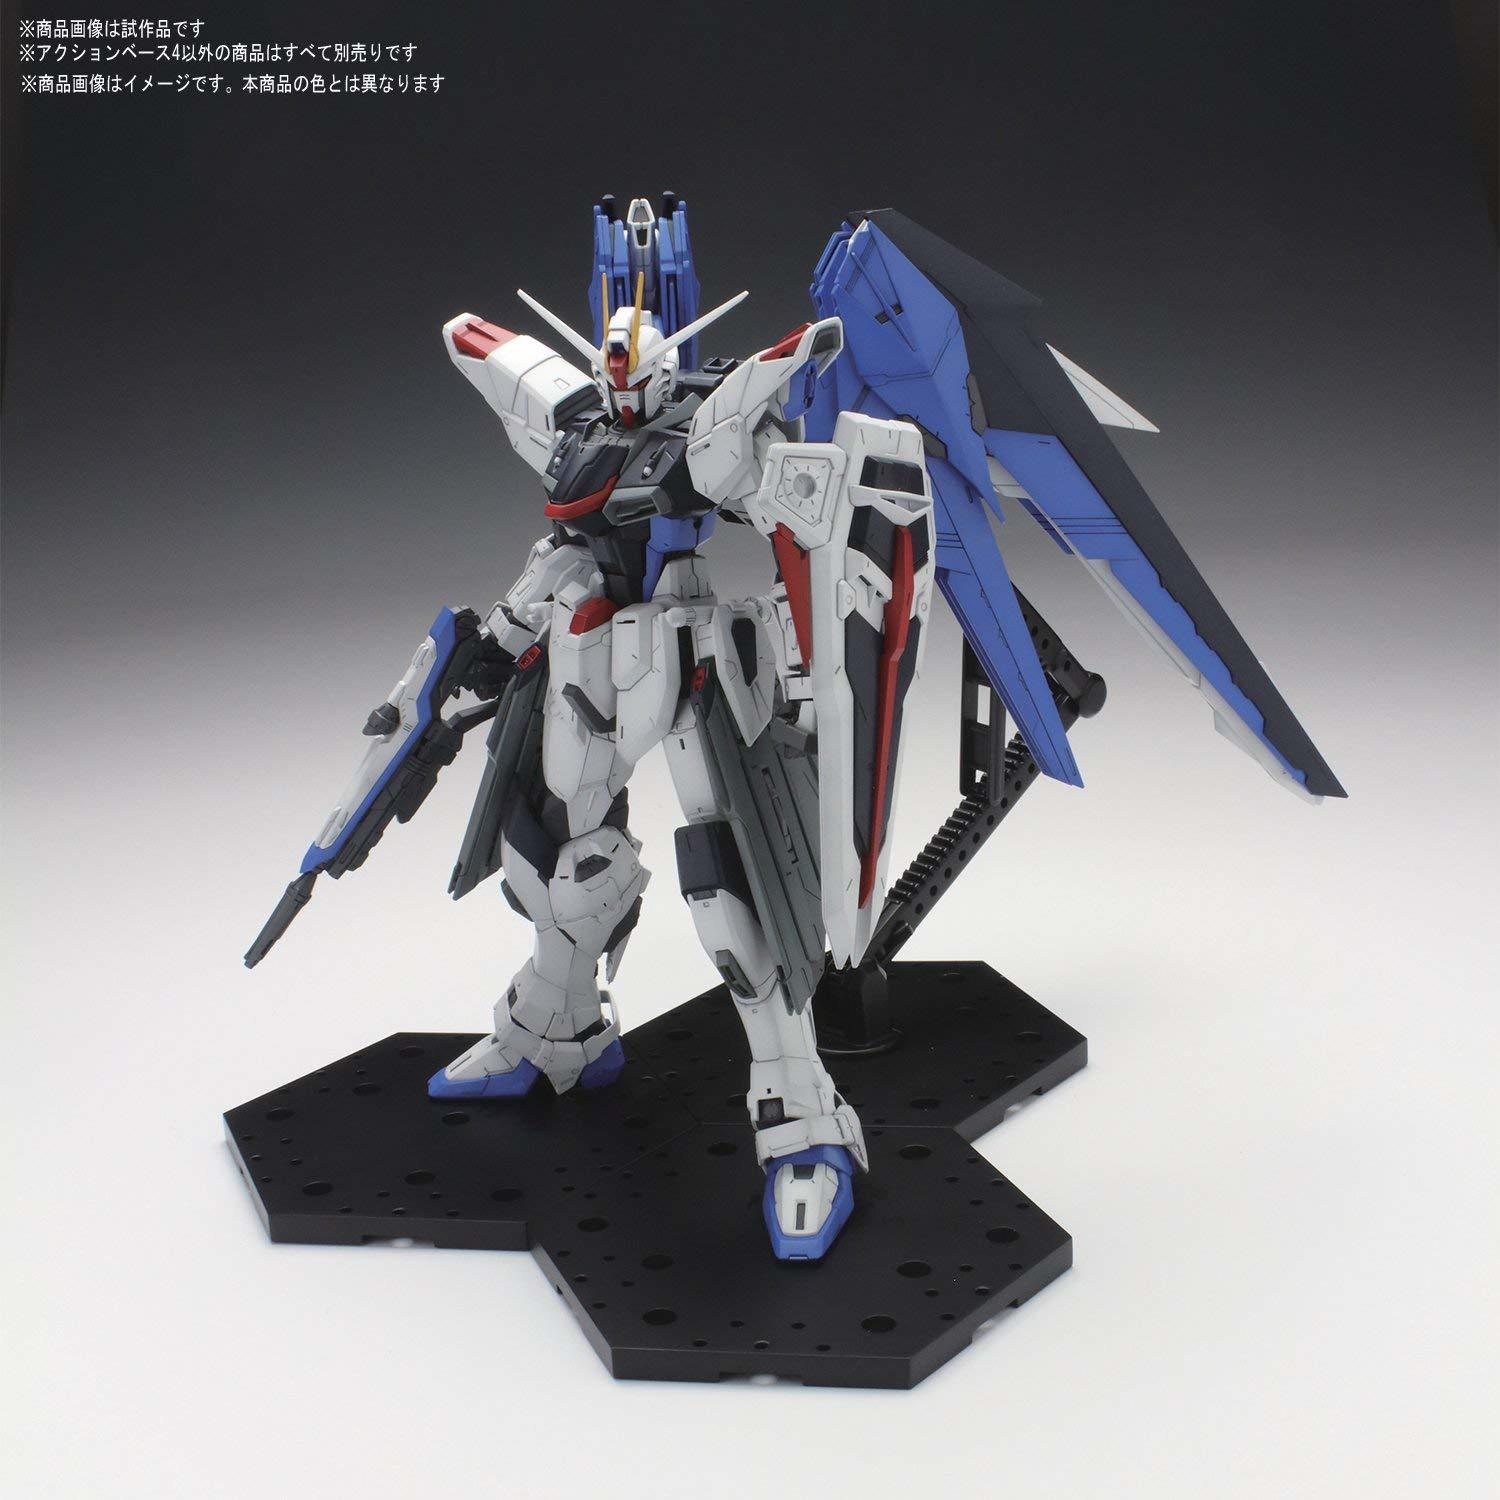 Gundam Action Base 4 - Clear image